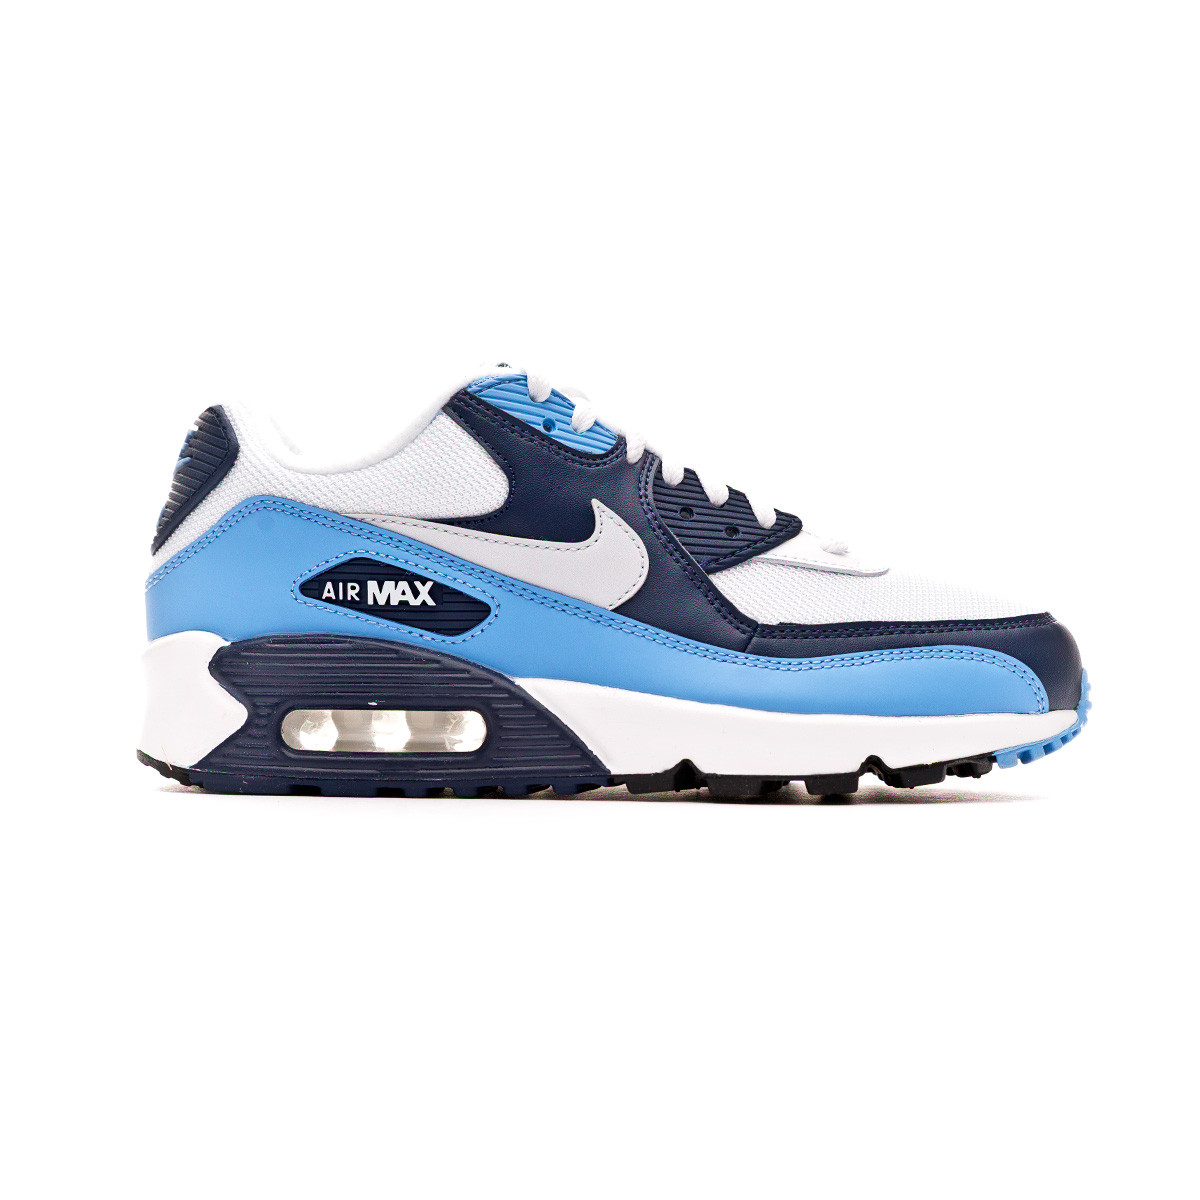 Zapatillas Nike Air Max 90 De Ni O N 35 Fotos Reales